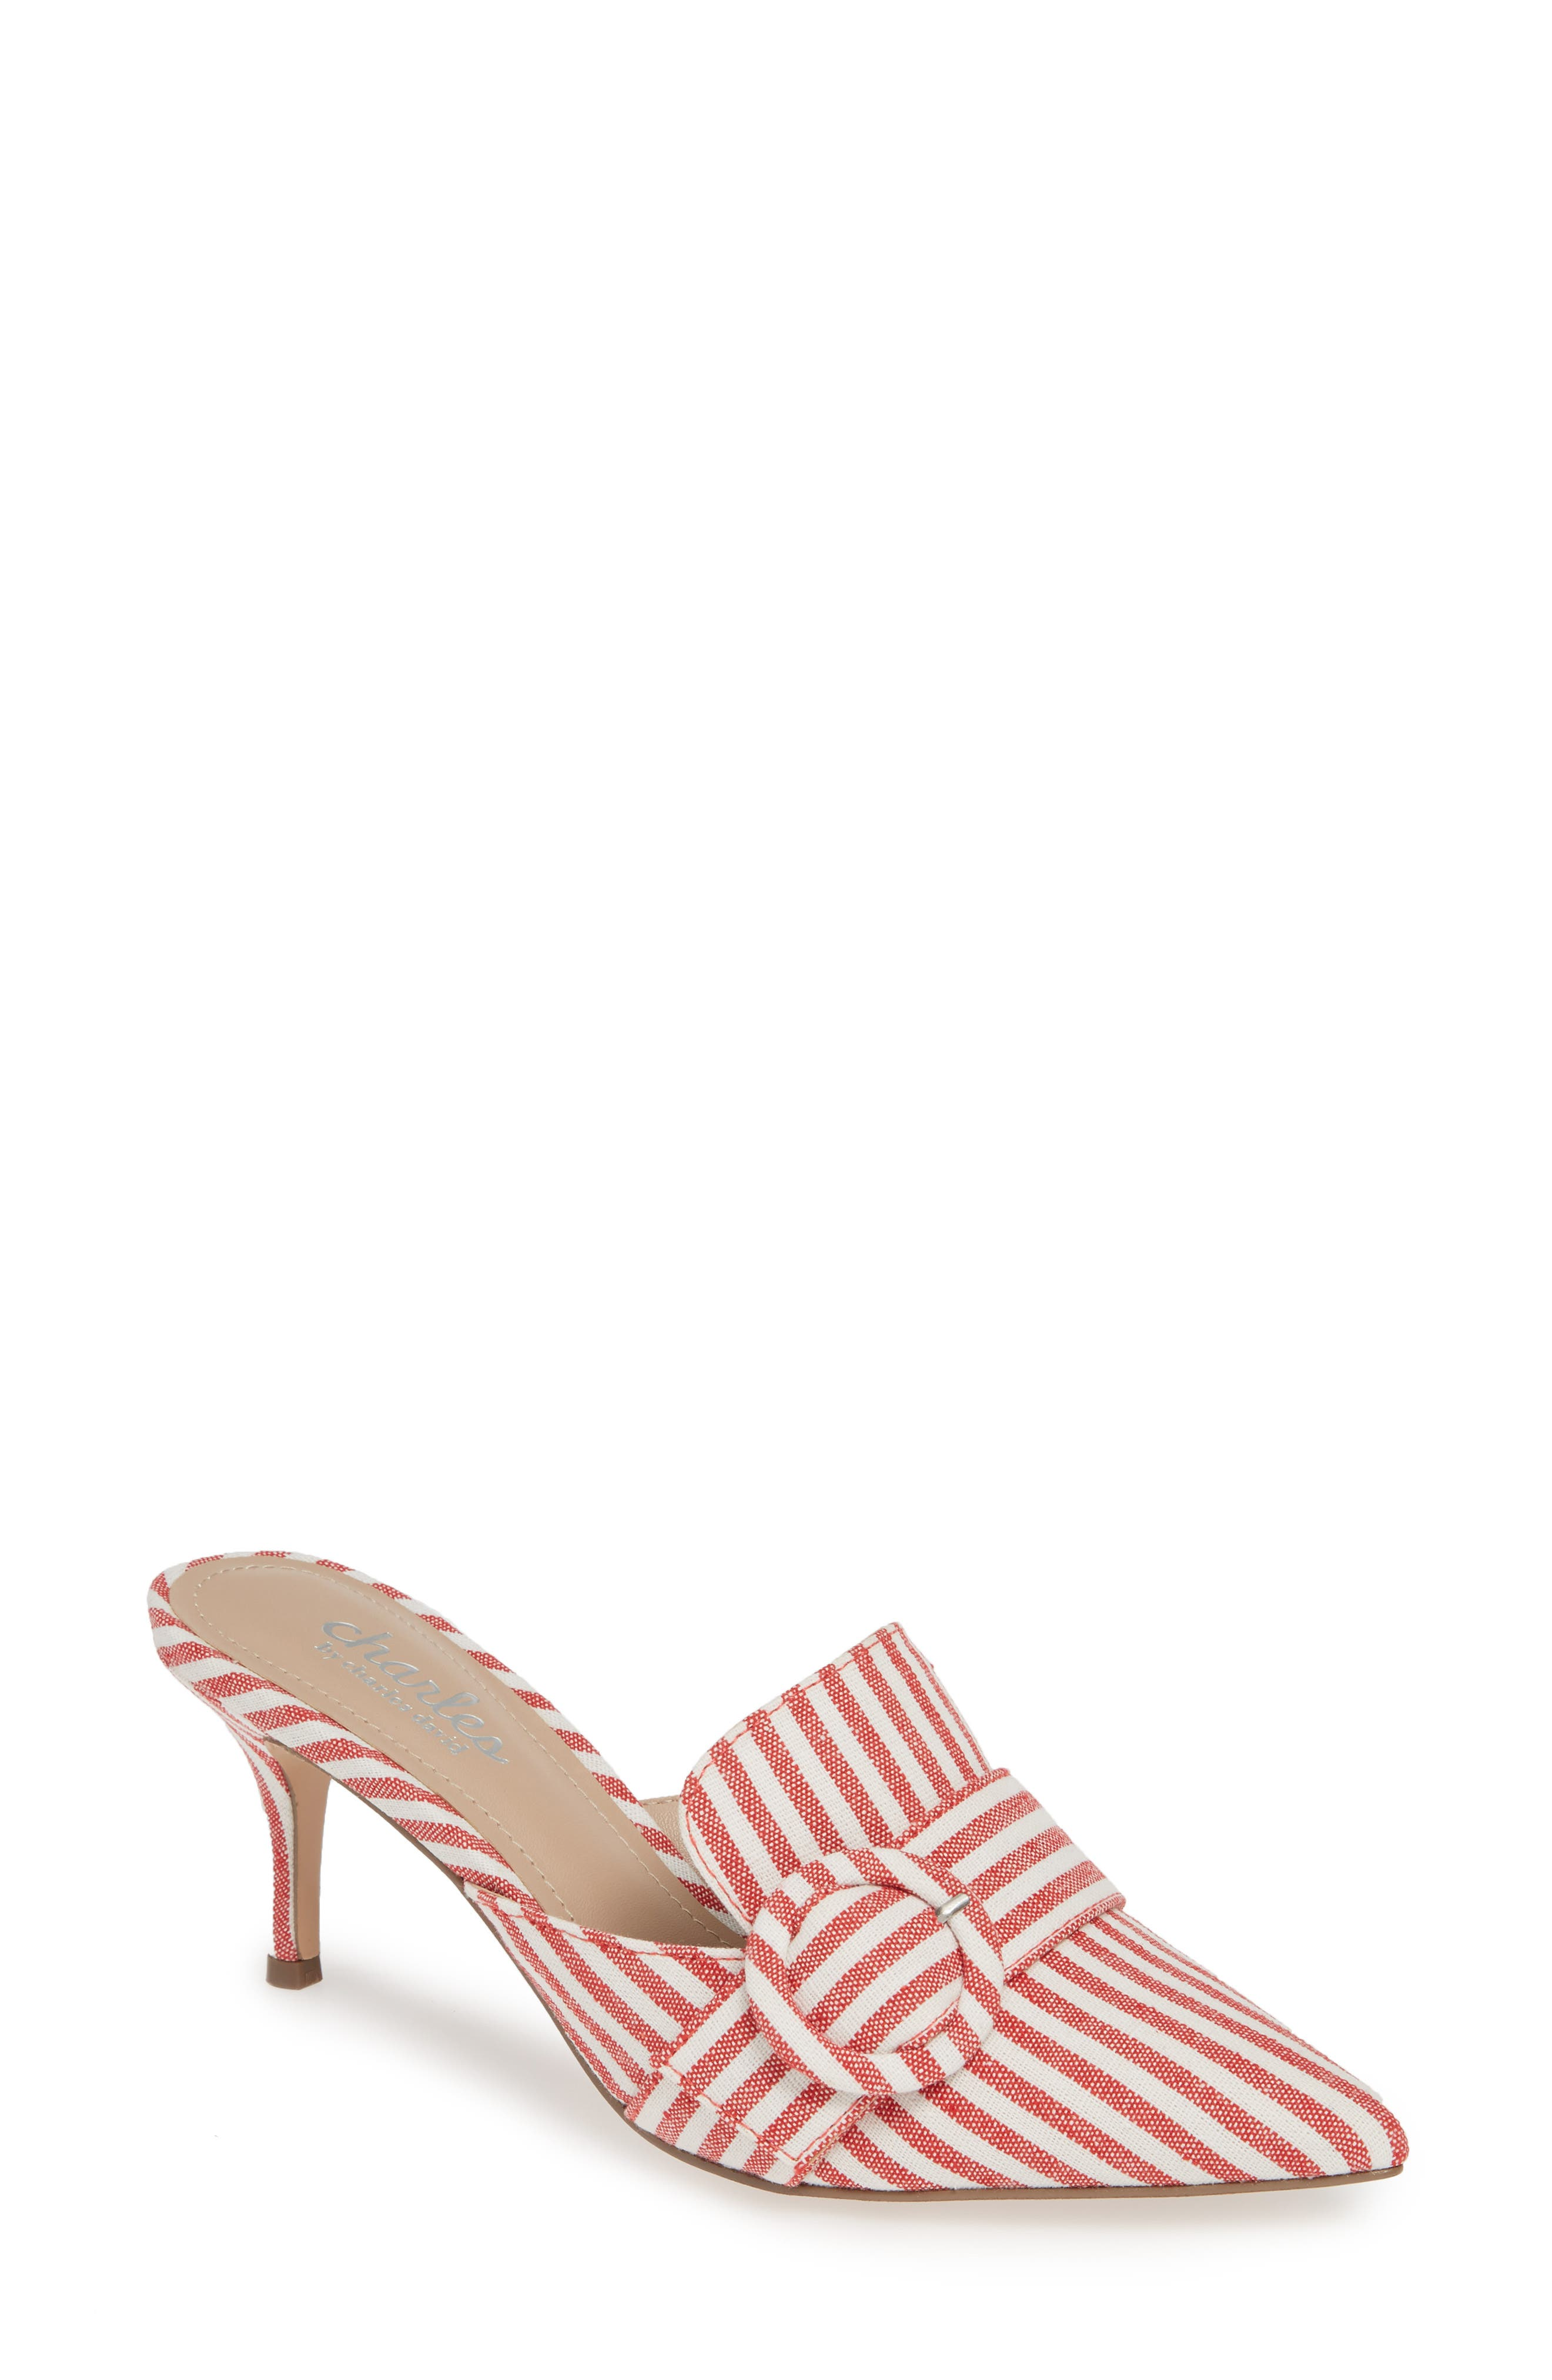 CHARLES BY CHARLES DAVID Acapulco Mule, Main, color, CANDY RED FABRIC